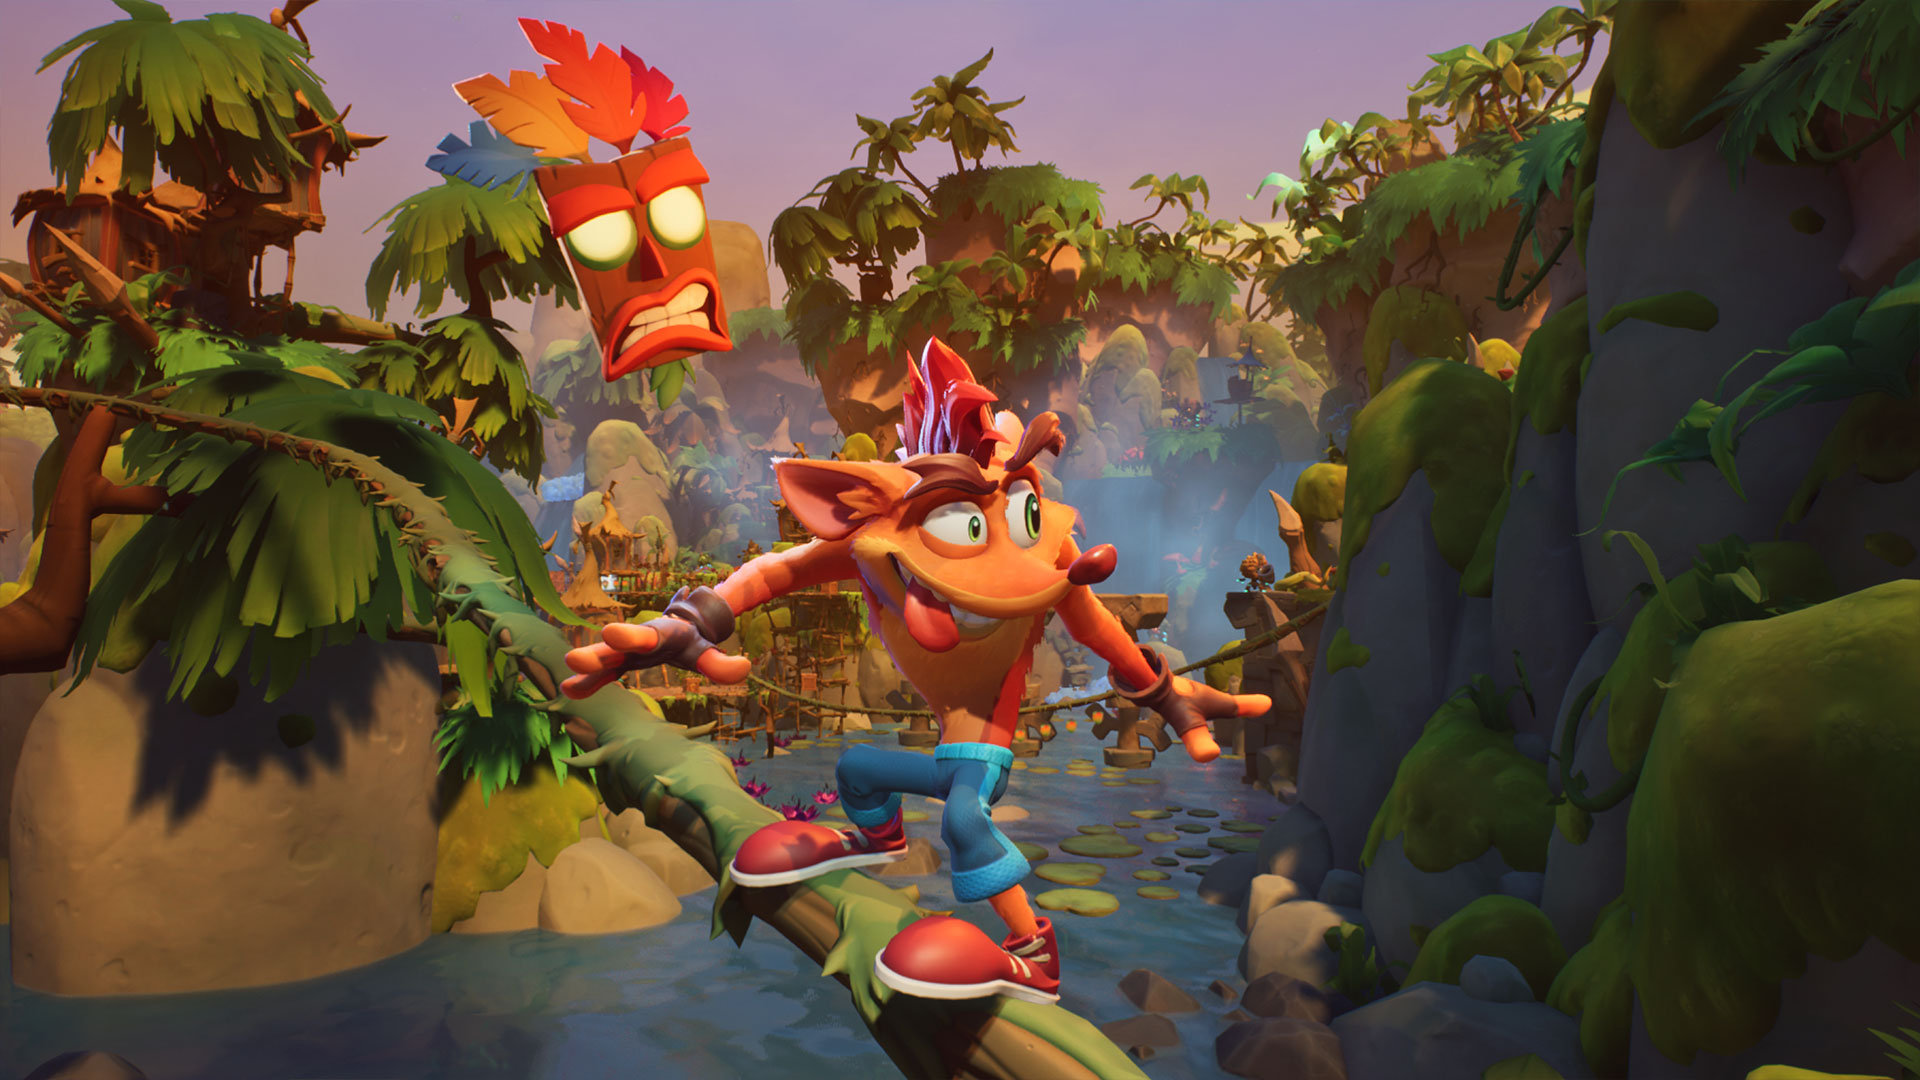 Crash Bandicoot 4: It's About Time dostal launch trailer